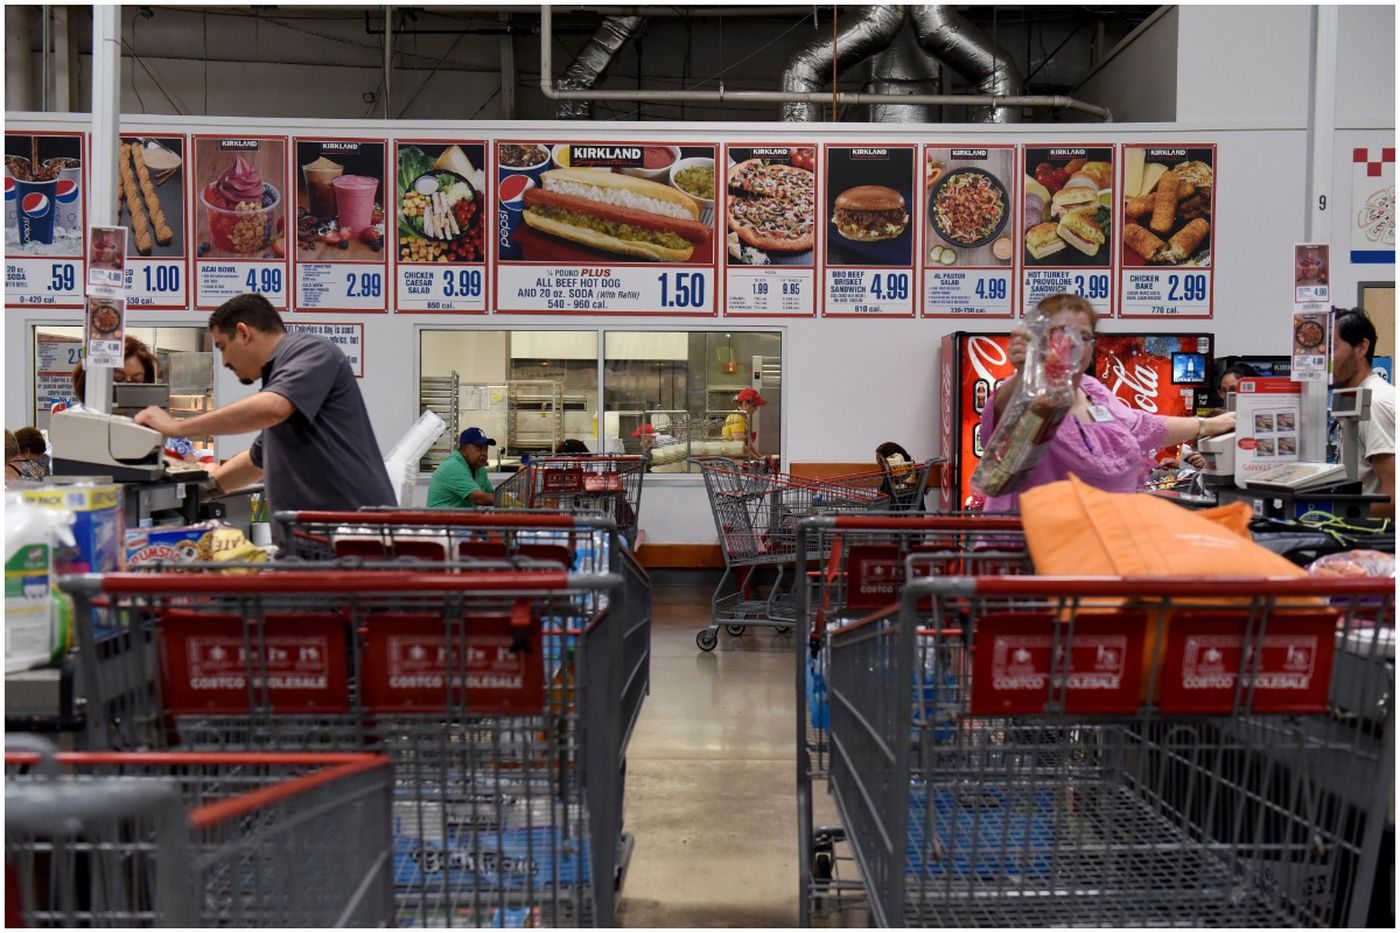 Costco is taking Polish hot dogs off its food-court menu. People are angry